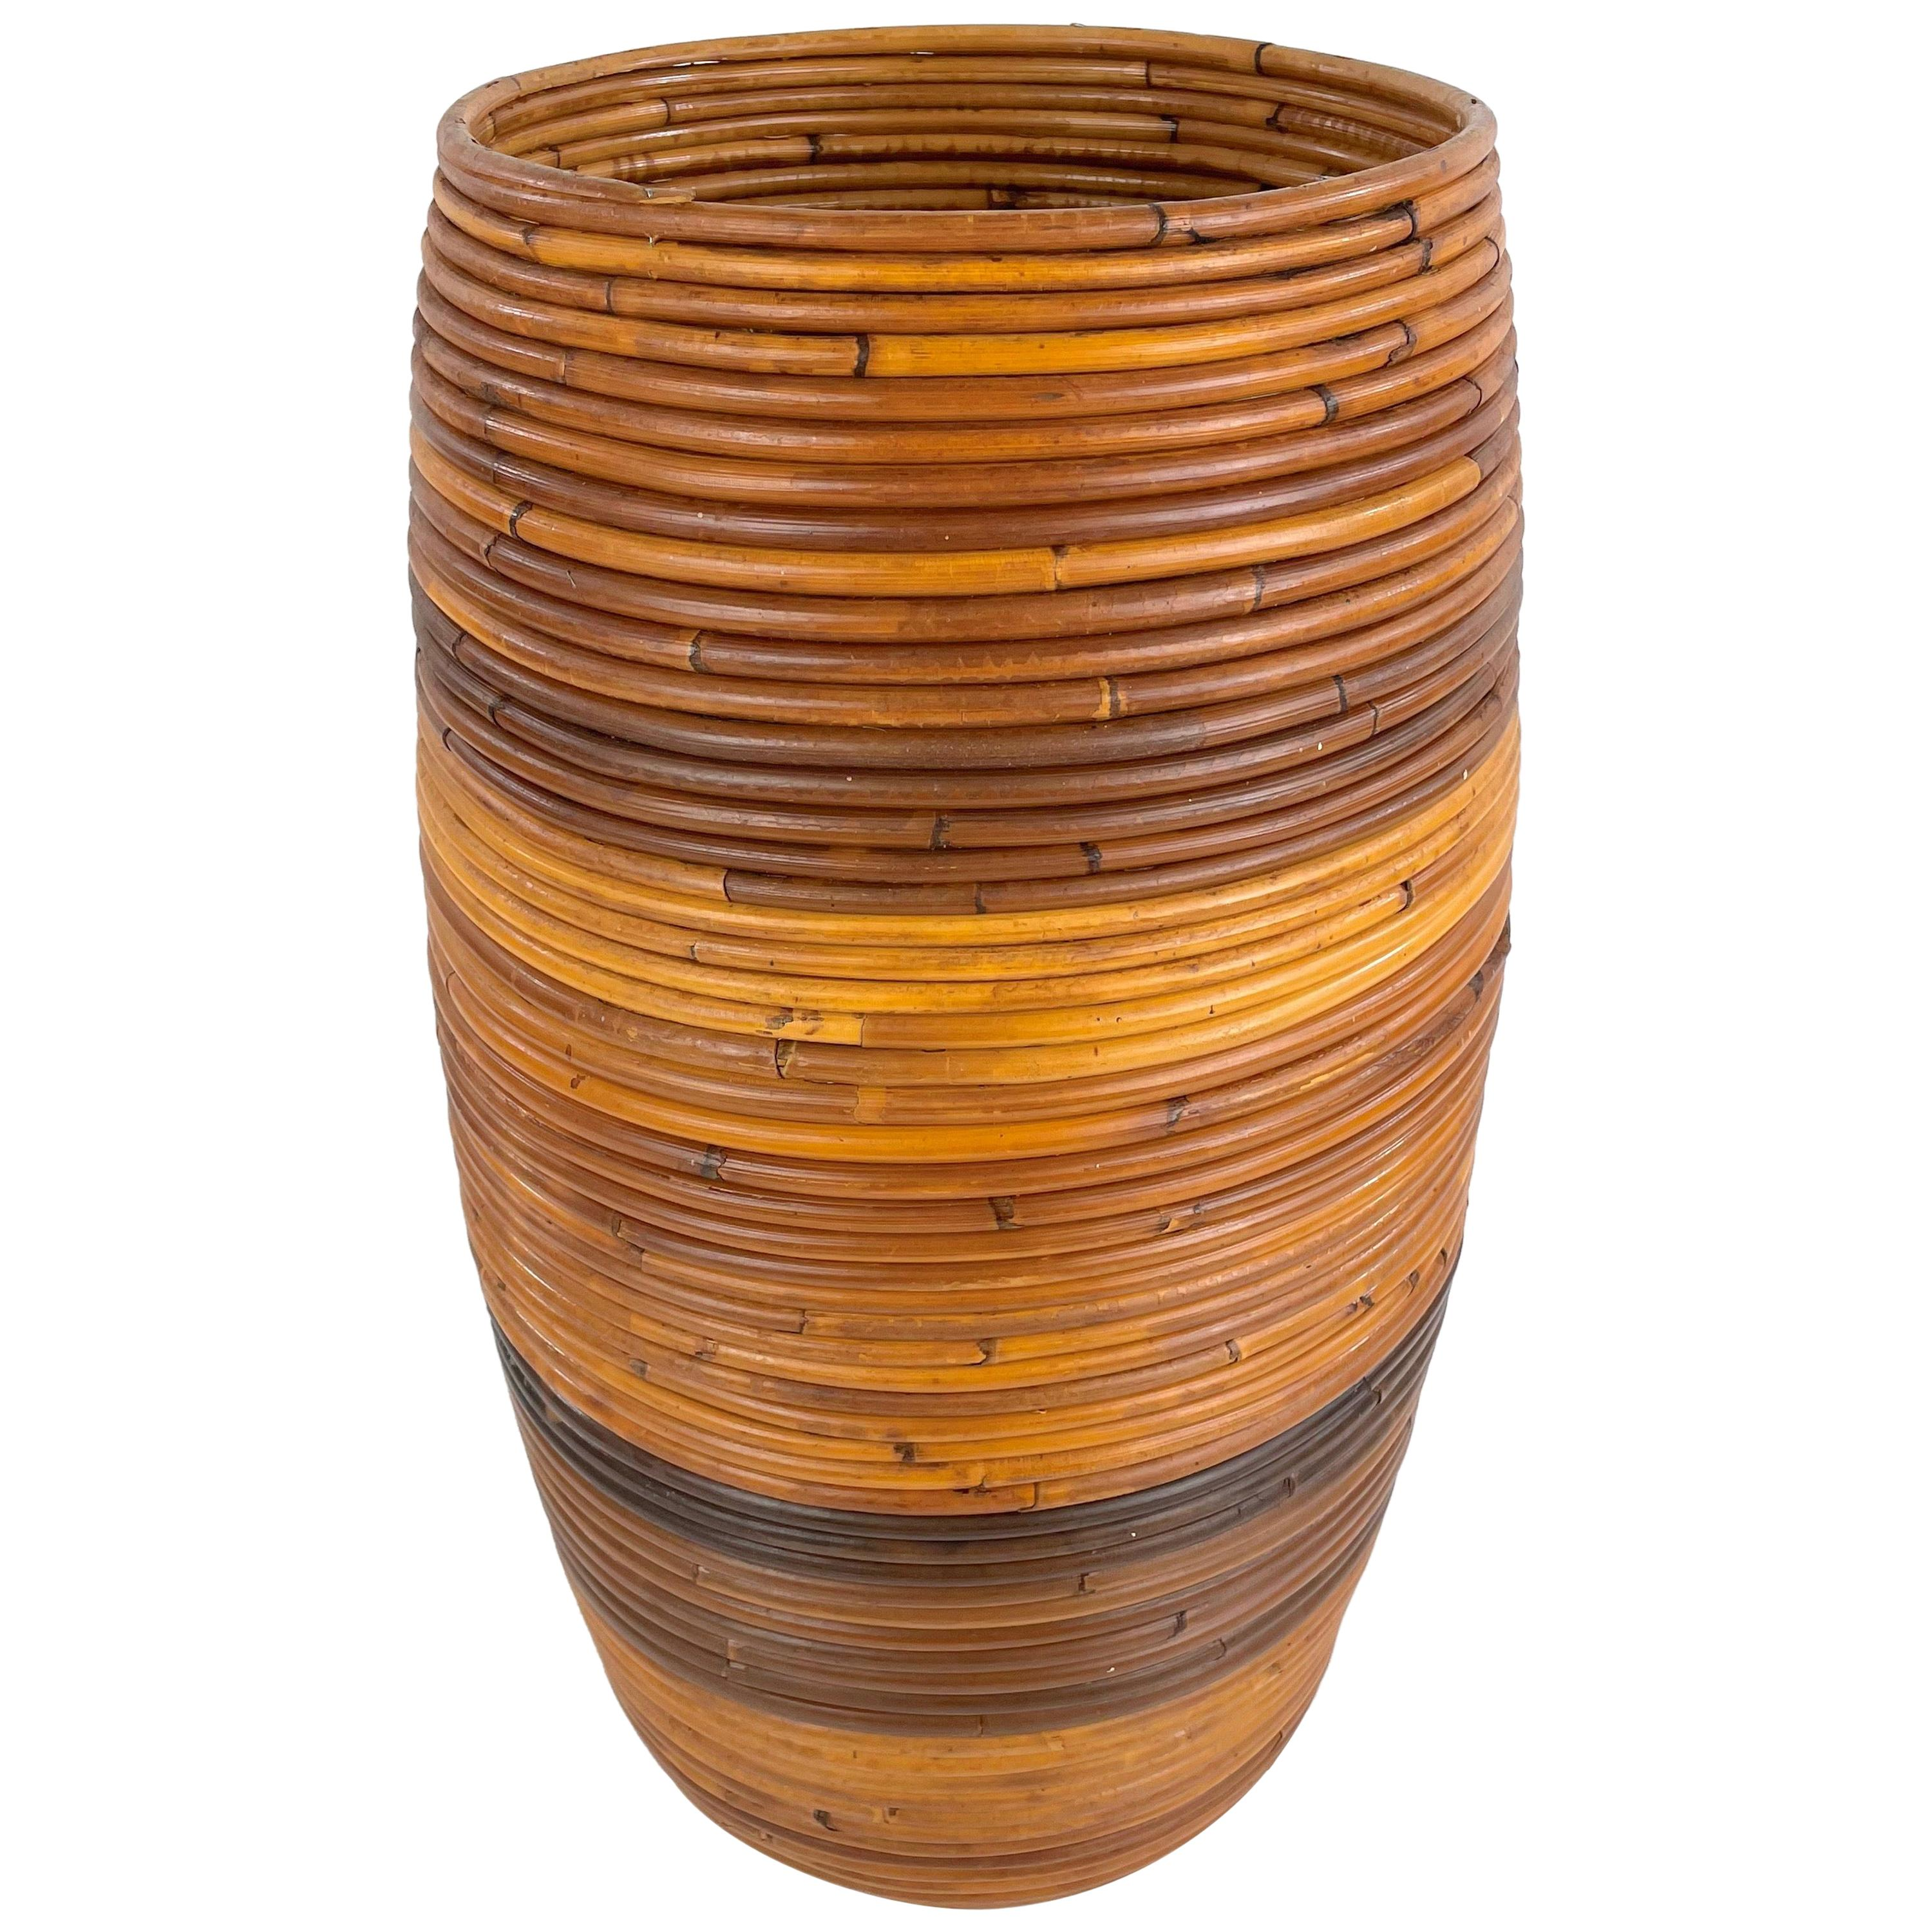 Rattan Umbrella Stand Holder or Basket, Italy, 1960s